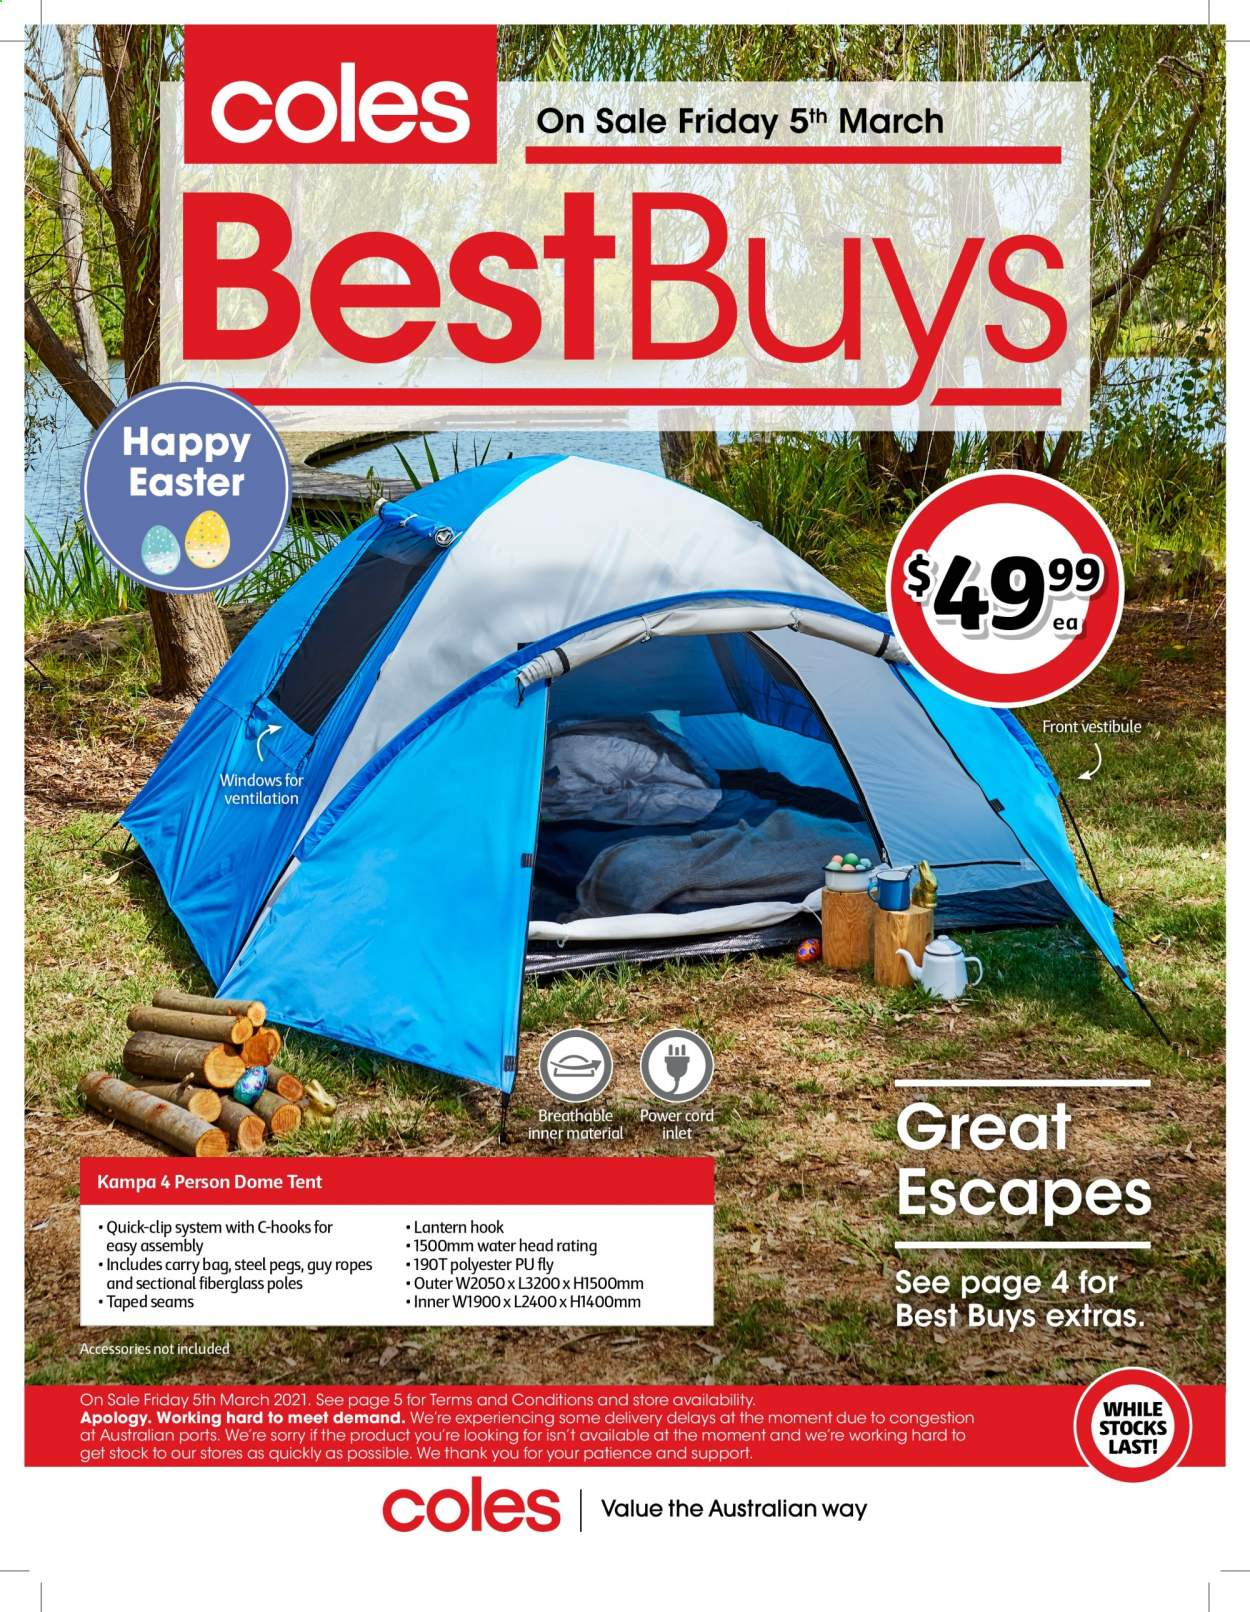 Coles Catalogue - 5.3.2021 - 18.3.2021 - Sales products - hook, lantern, carry bag. Page 1.